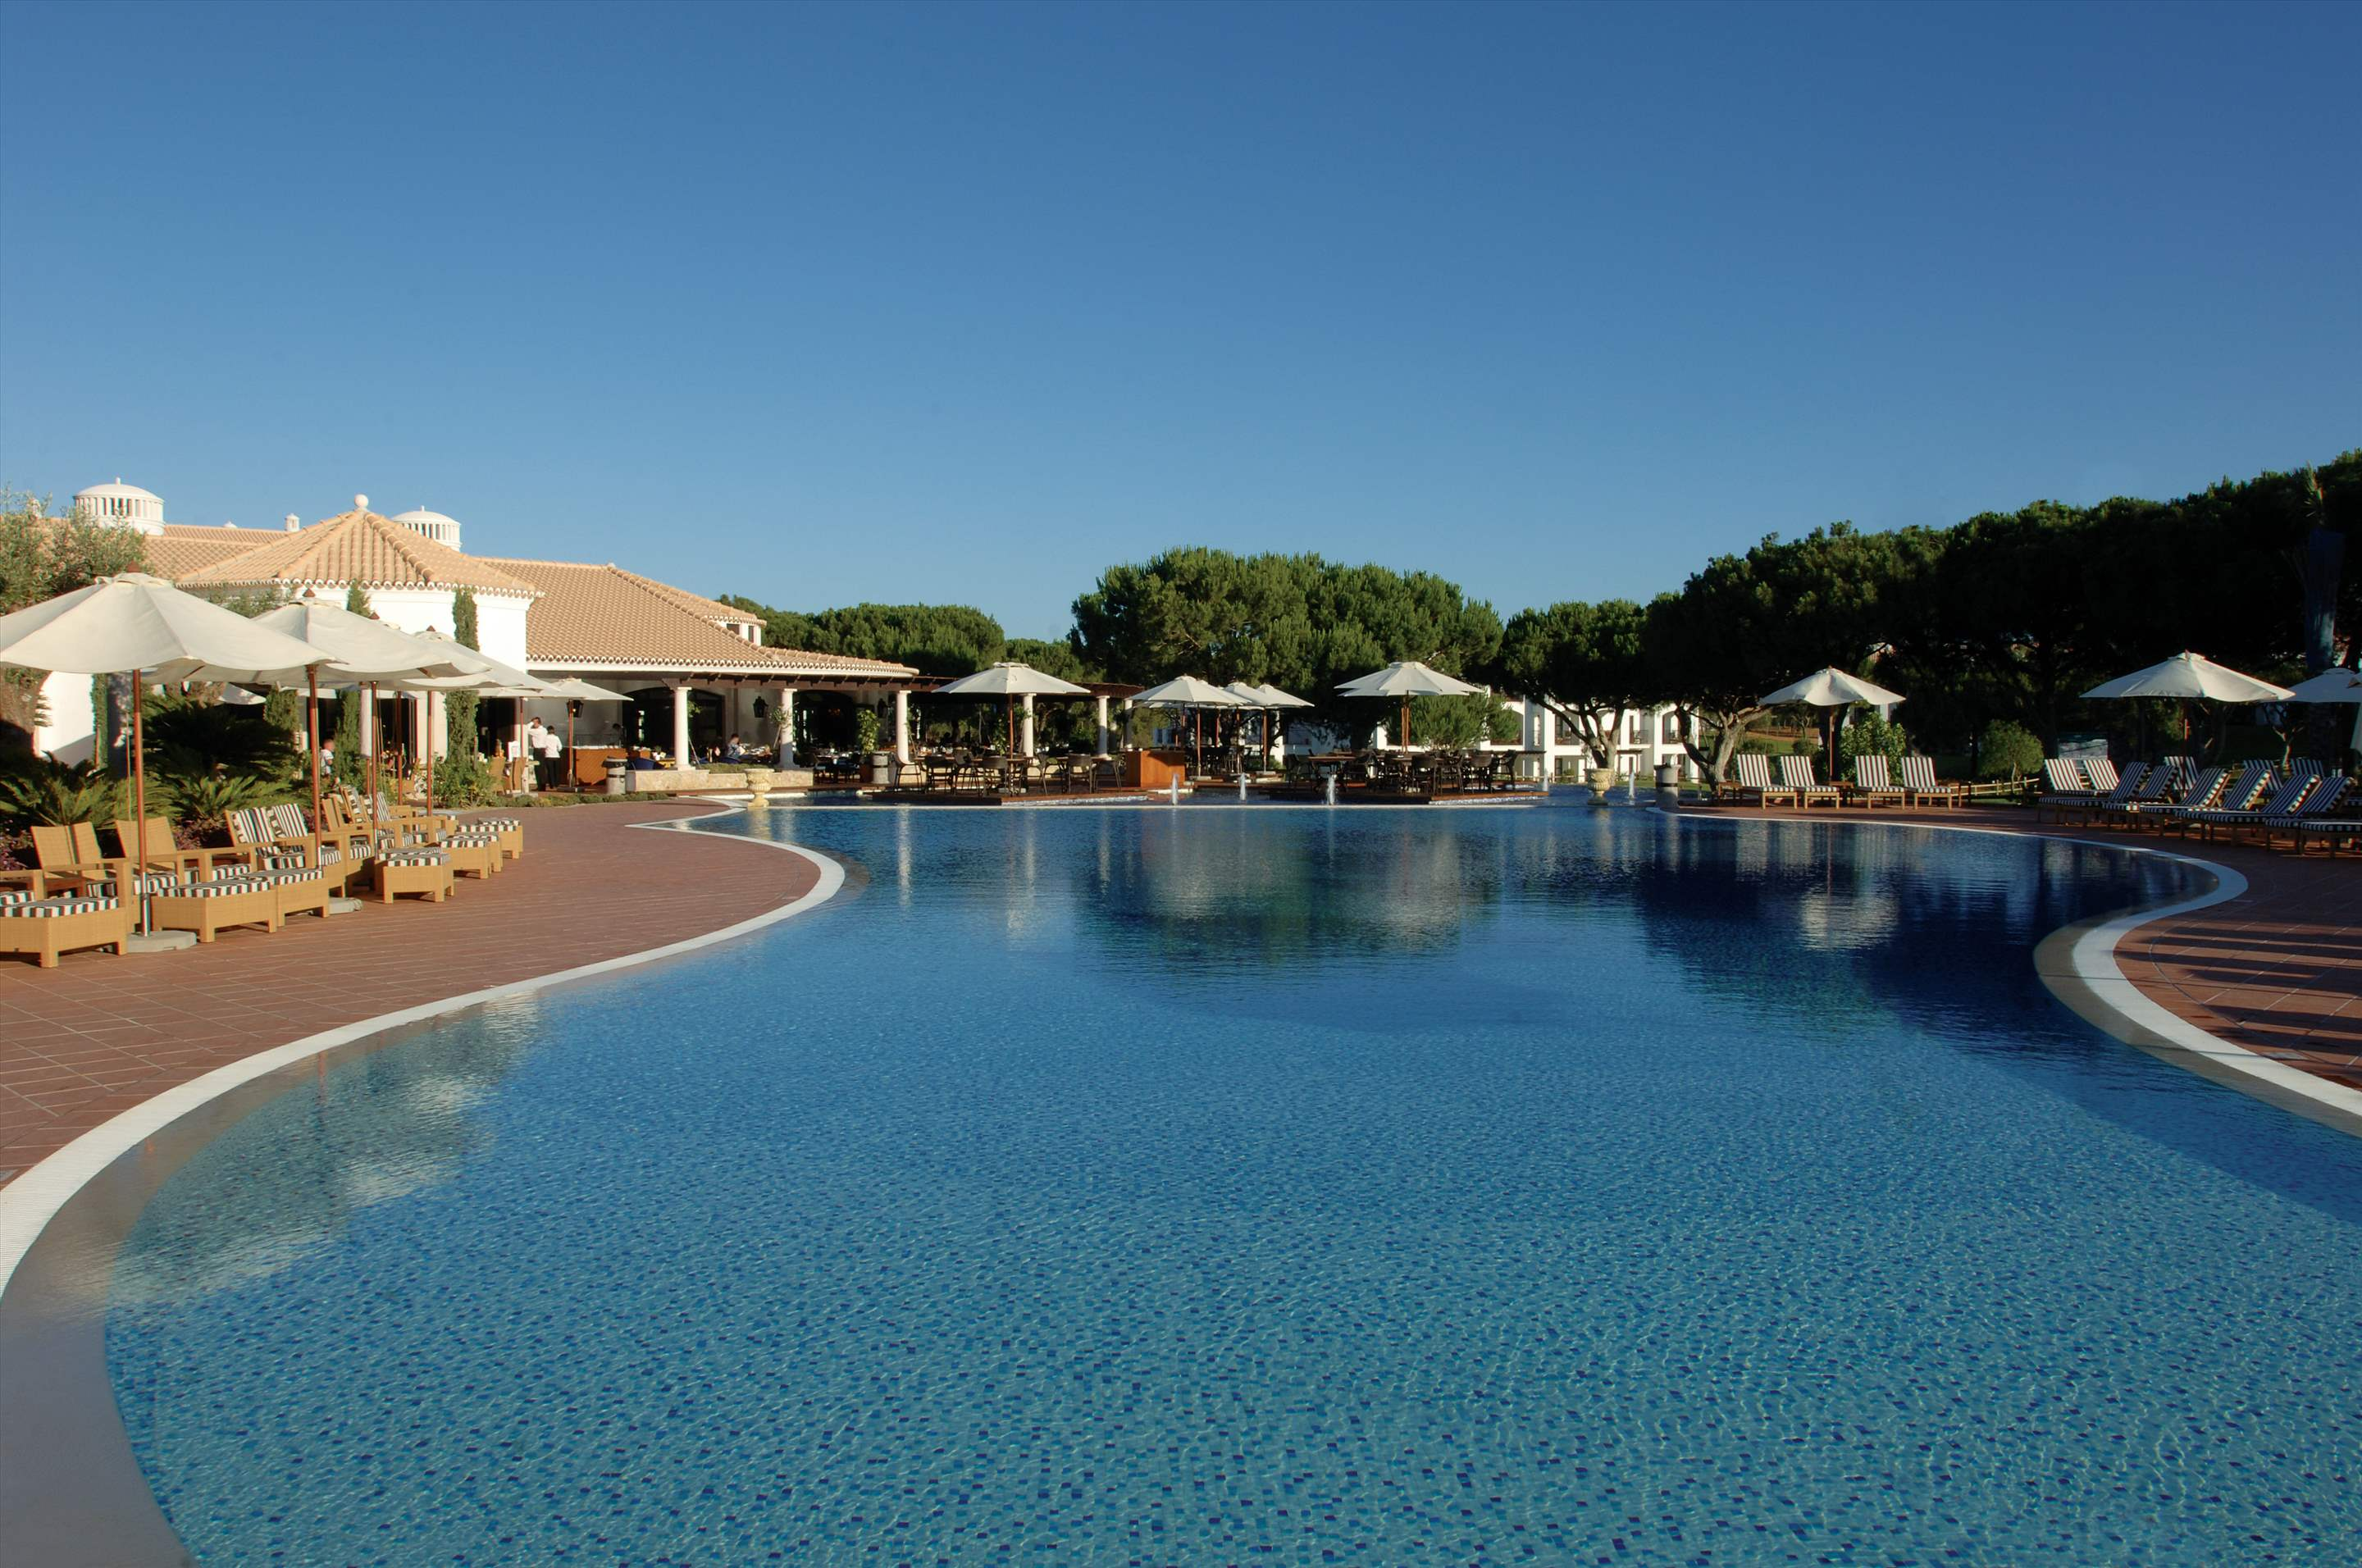 Pine Cliffs Residence, Penthouse 3 bed luxury suite, 3 bedroom apartment in Pine Cliffs Resort, Algarve Photo #24